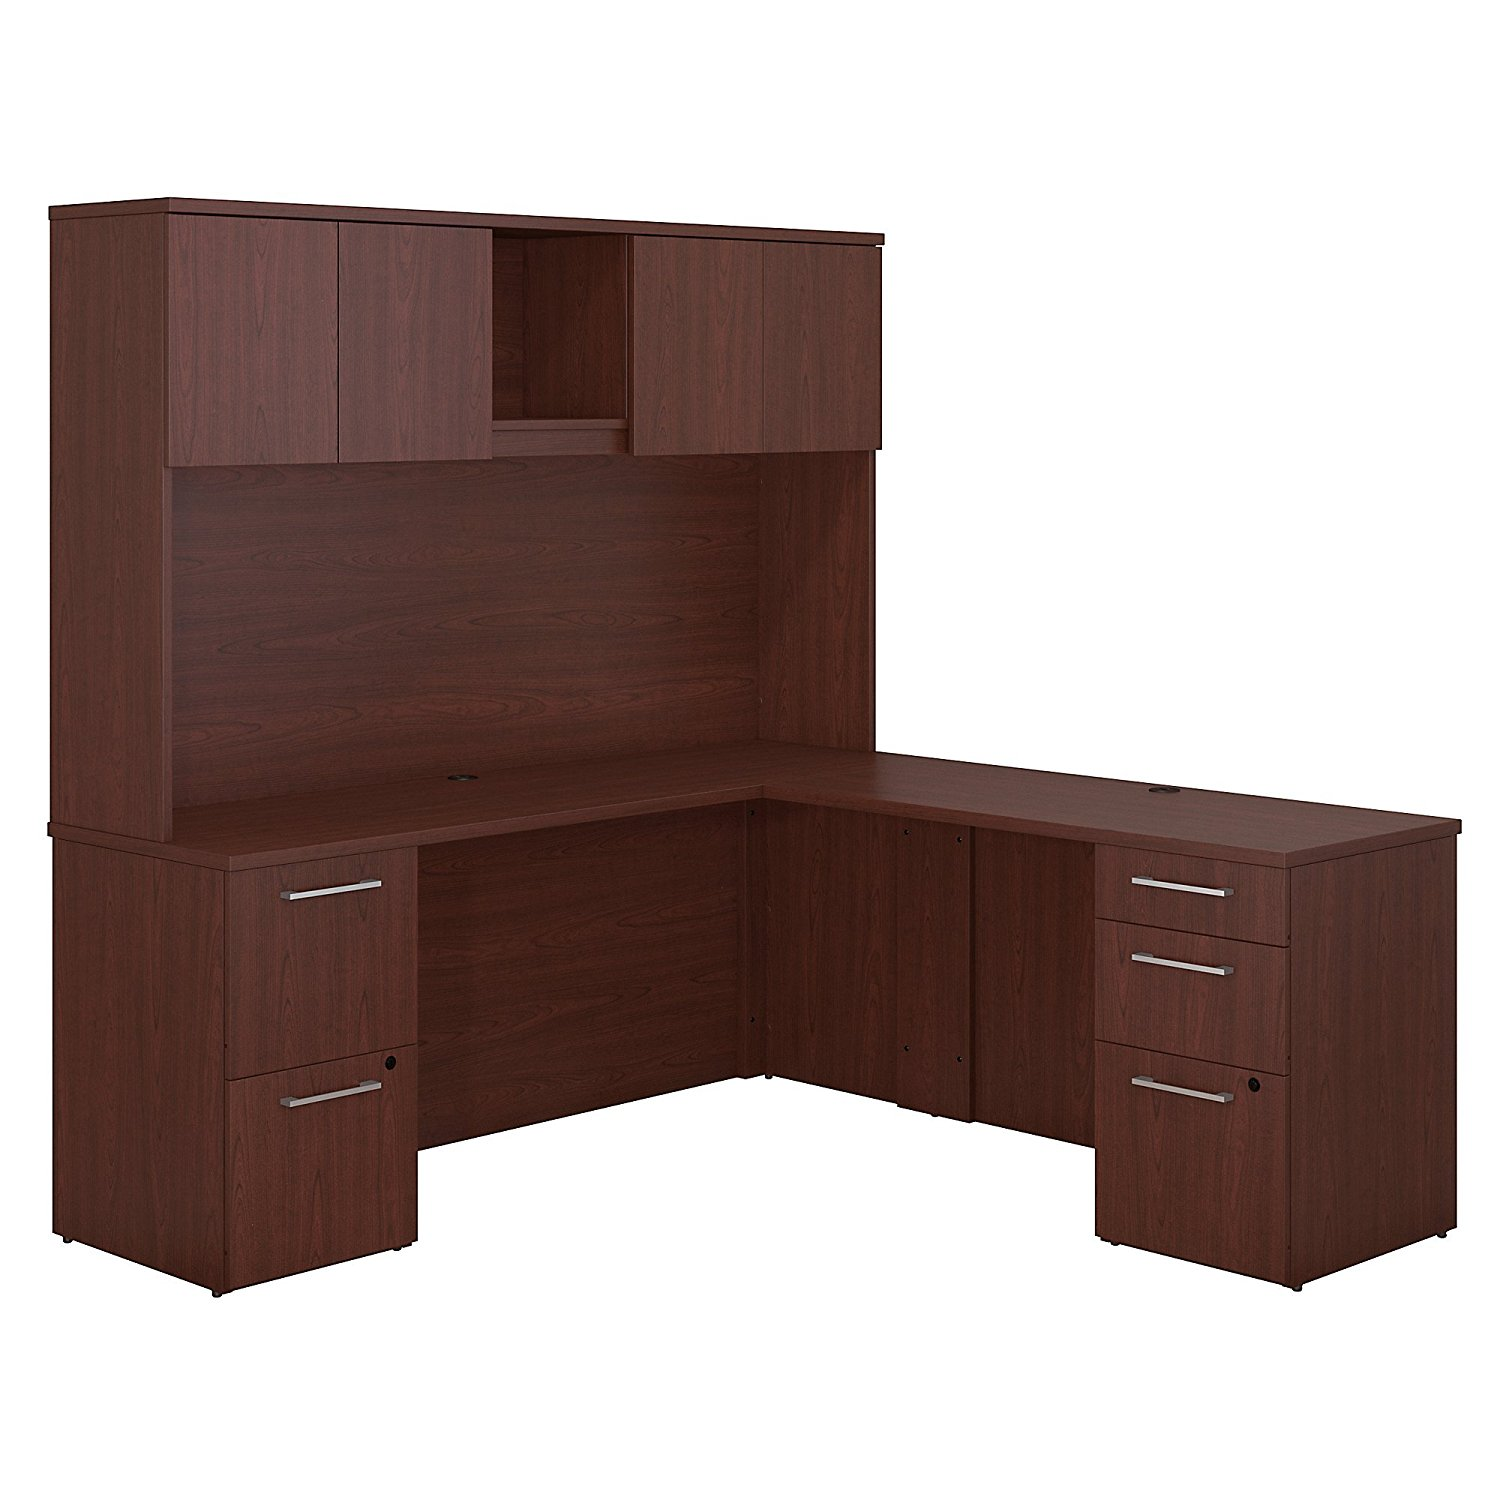 Bush Business Furniture 300 Series 72W x 22D L Shaped Harvest Cherry Office Desk with Hutch, 2 Pedestals and 48W Return